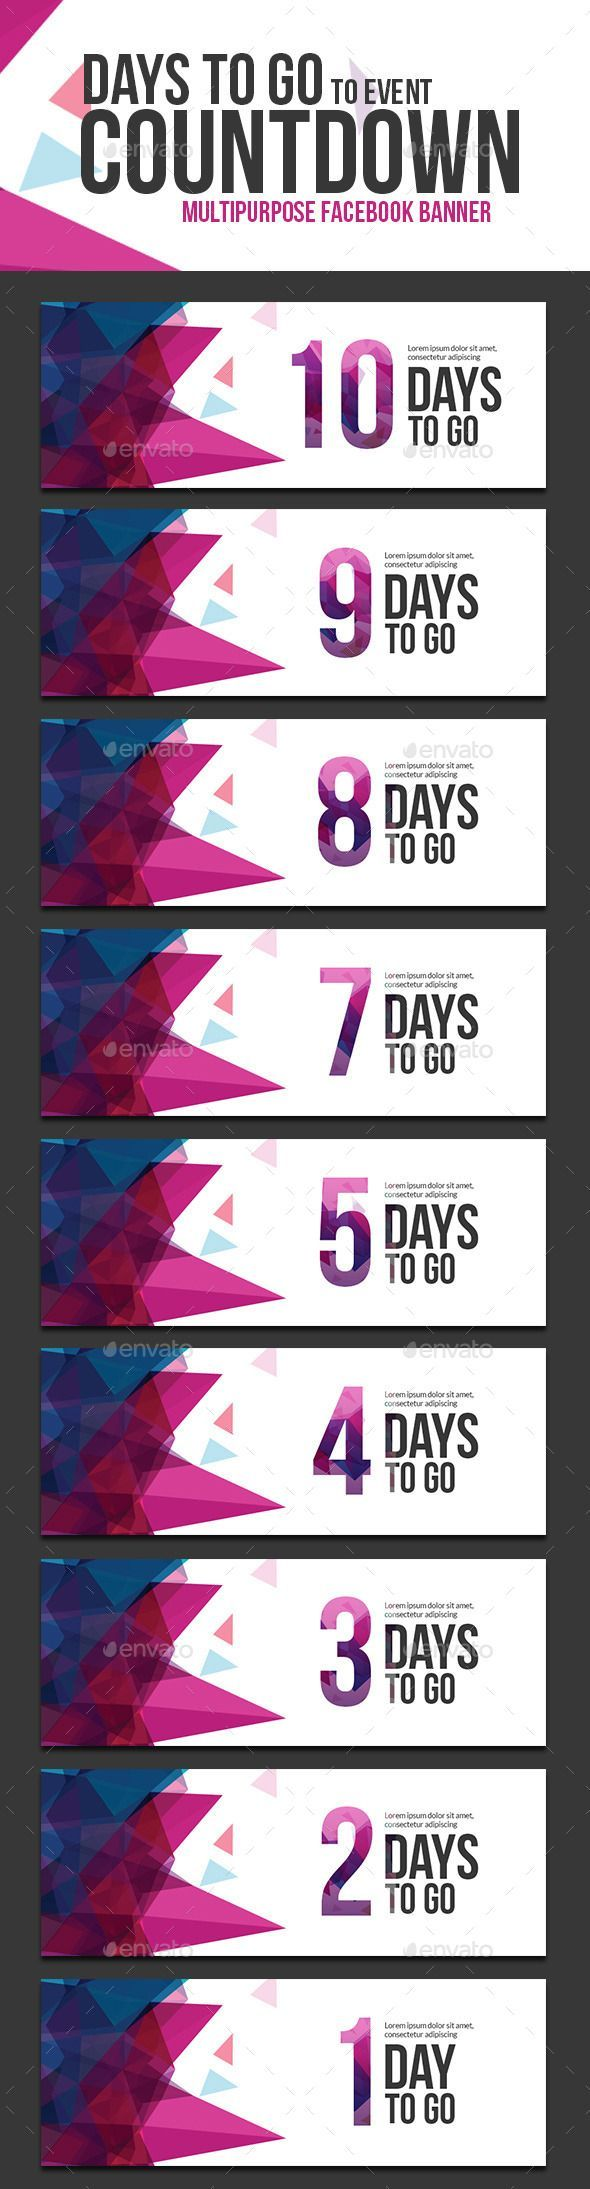 Days to go Countdown Web Banner Template #design Download: http://graphicriver.net/item/days-to-go-countdown-banner/11338341?ref=ksioks: